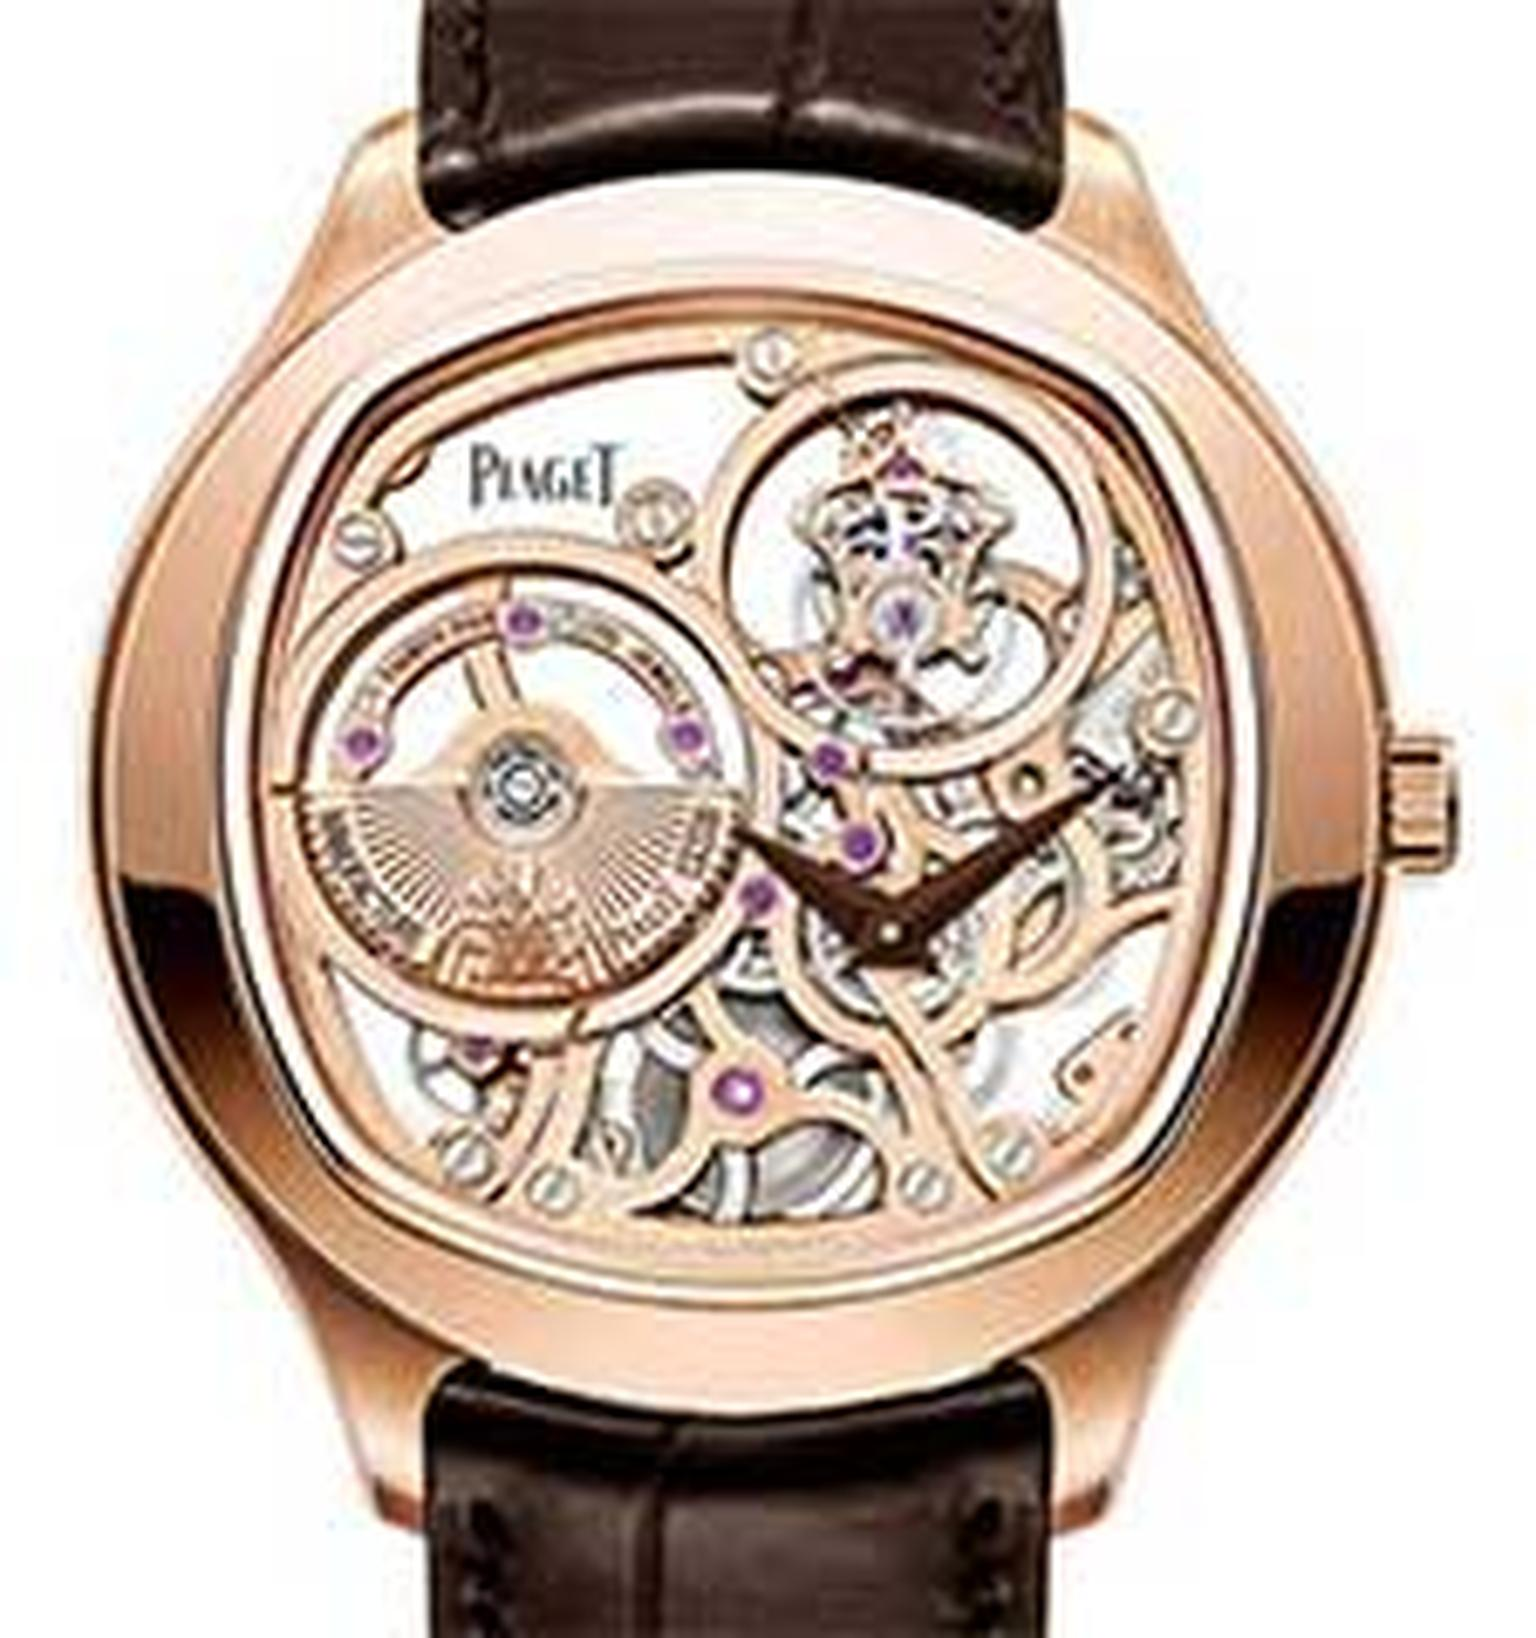 Piaget tourbillon watch HP